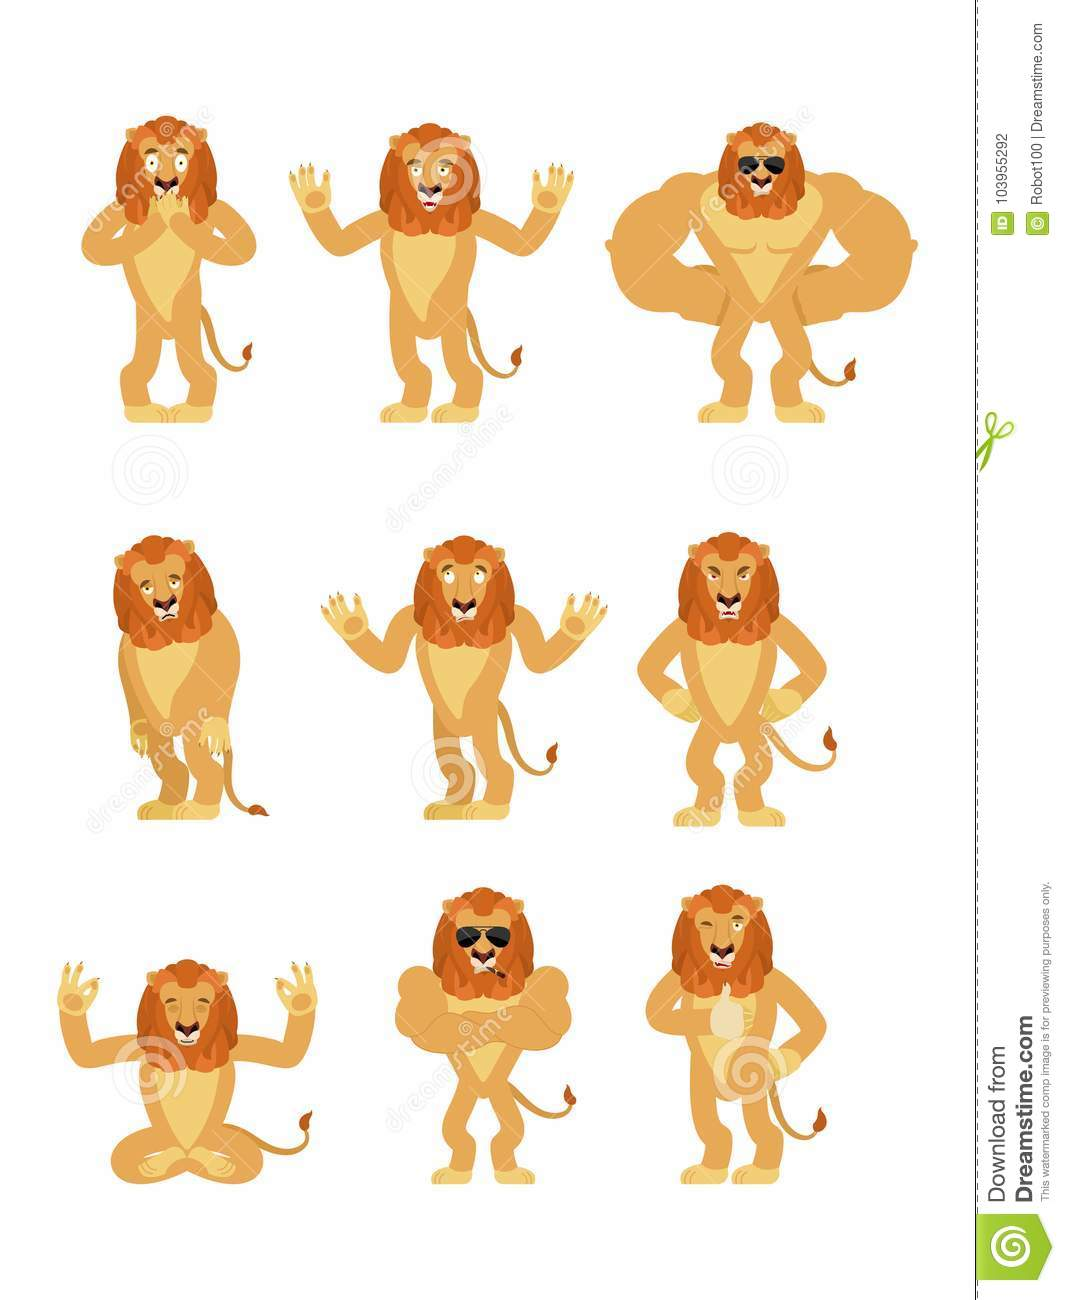 Lion Set Poses And Motion. Wild Animal Happy And Yoga. Stock Vector ... 0036c70d70e3